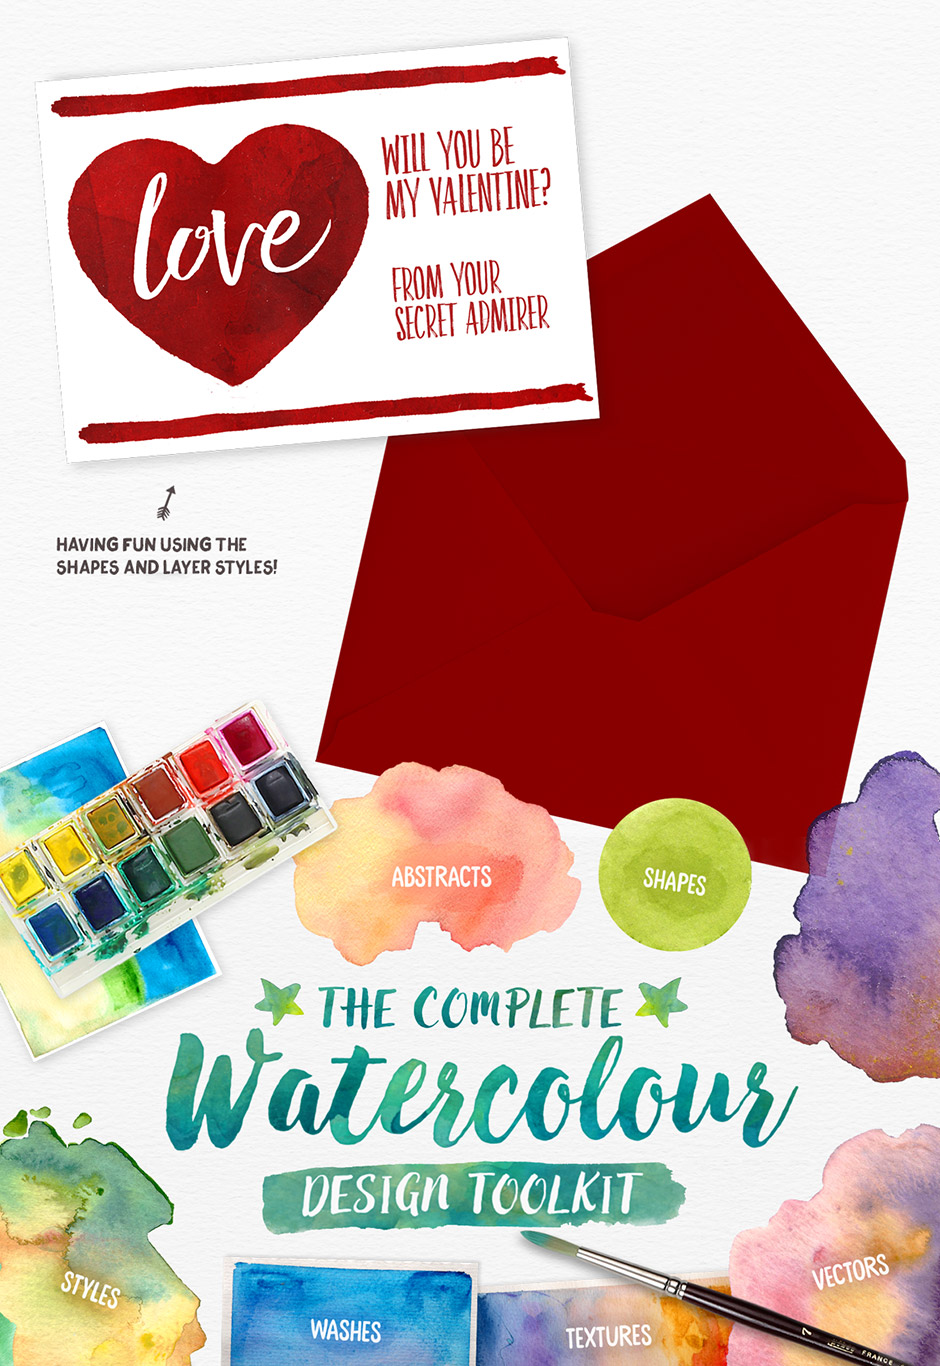 The Complete Watercolour Design Toolkit